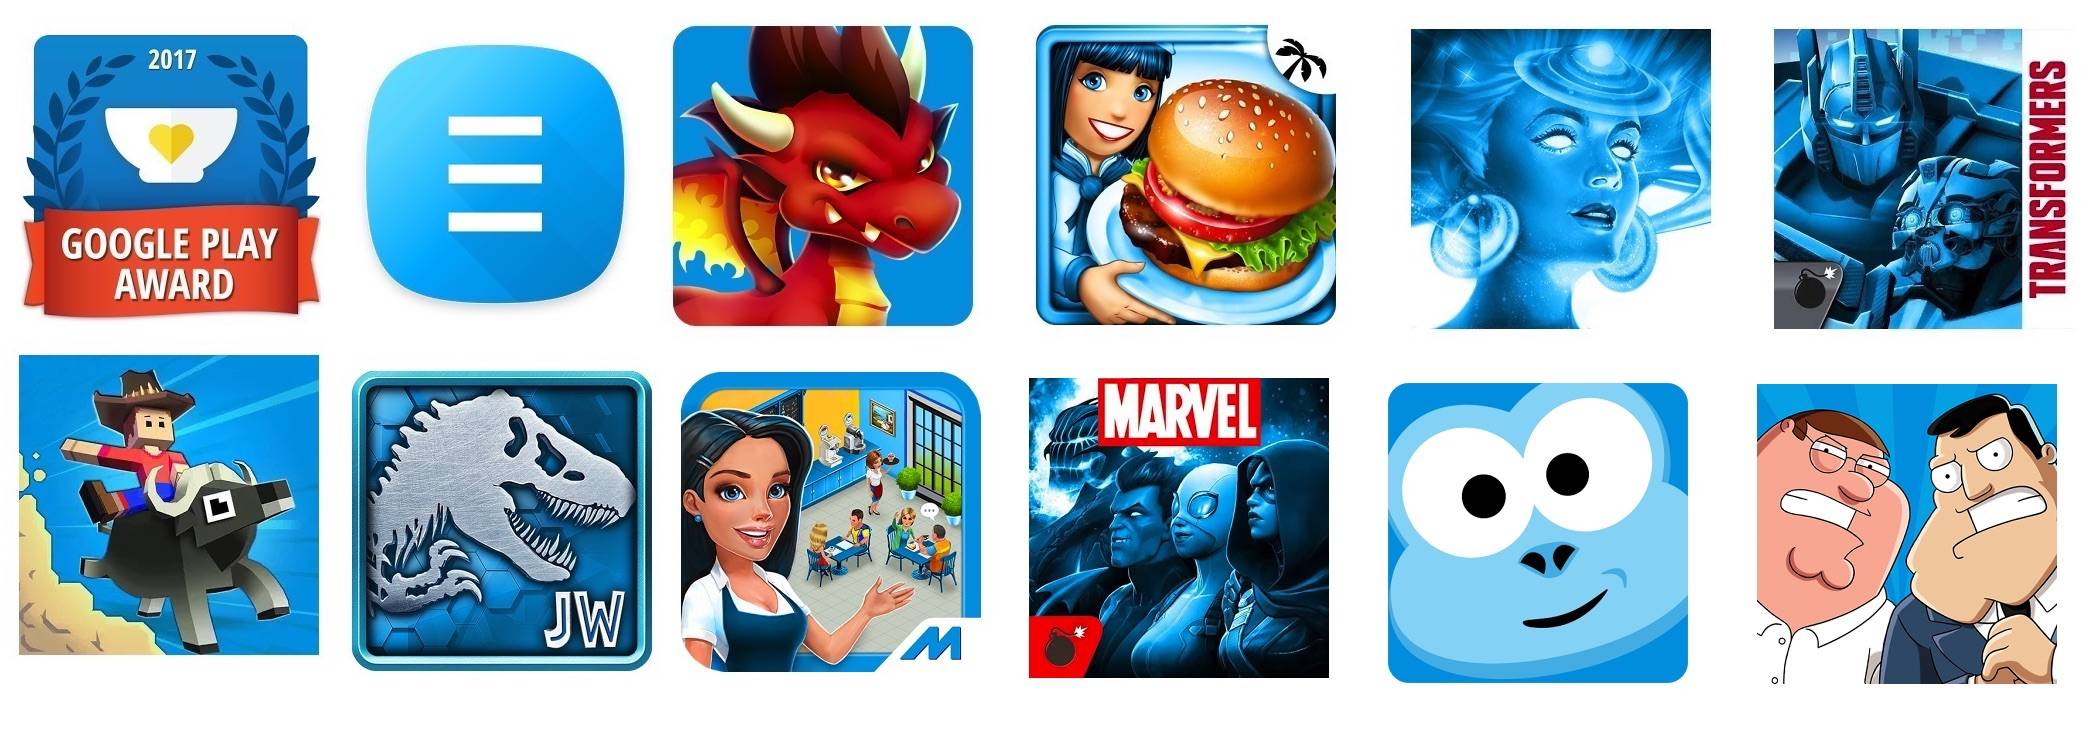 Google Play's Apps and Games Against Hunger collection